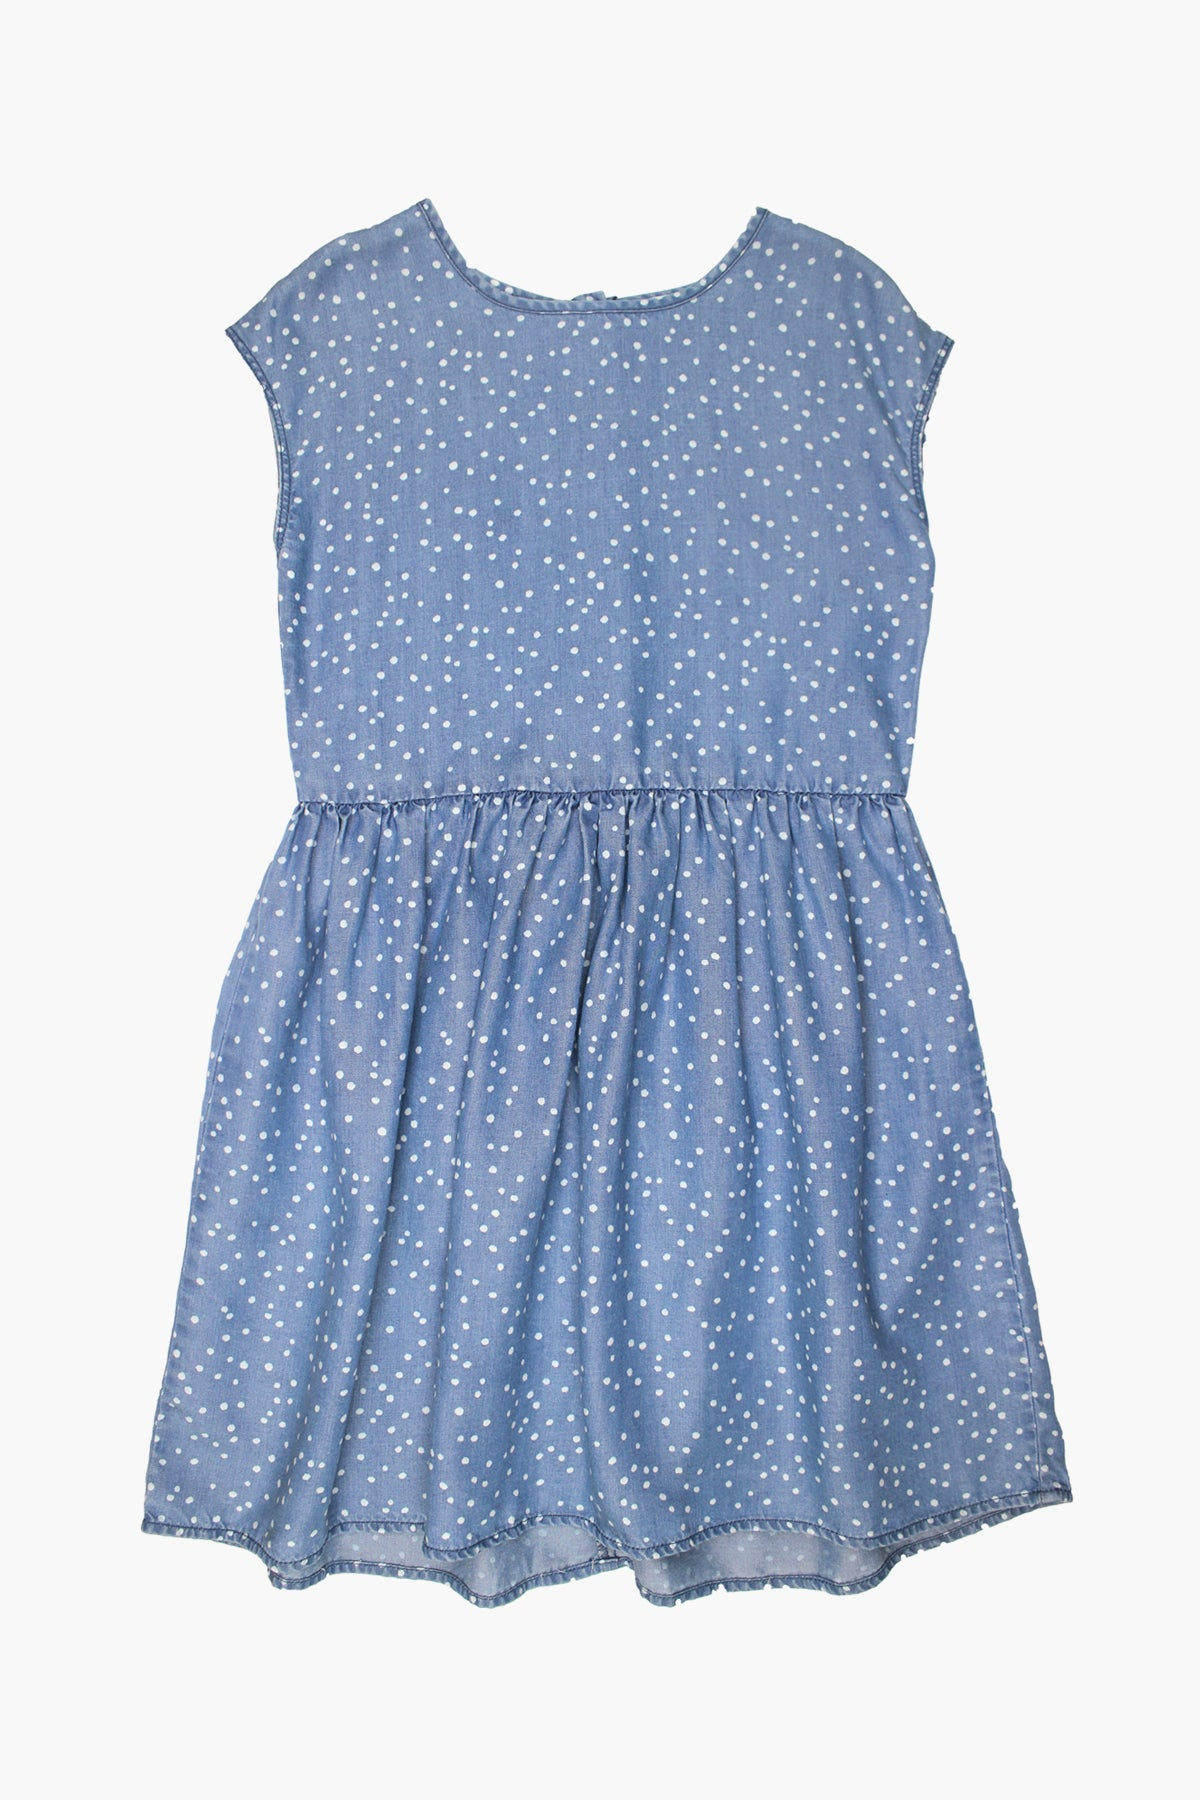 Splendid Chambray Dot Girls Dress